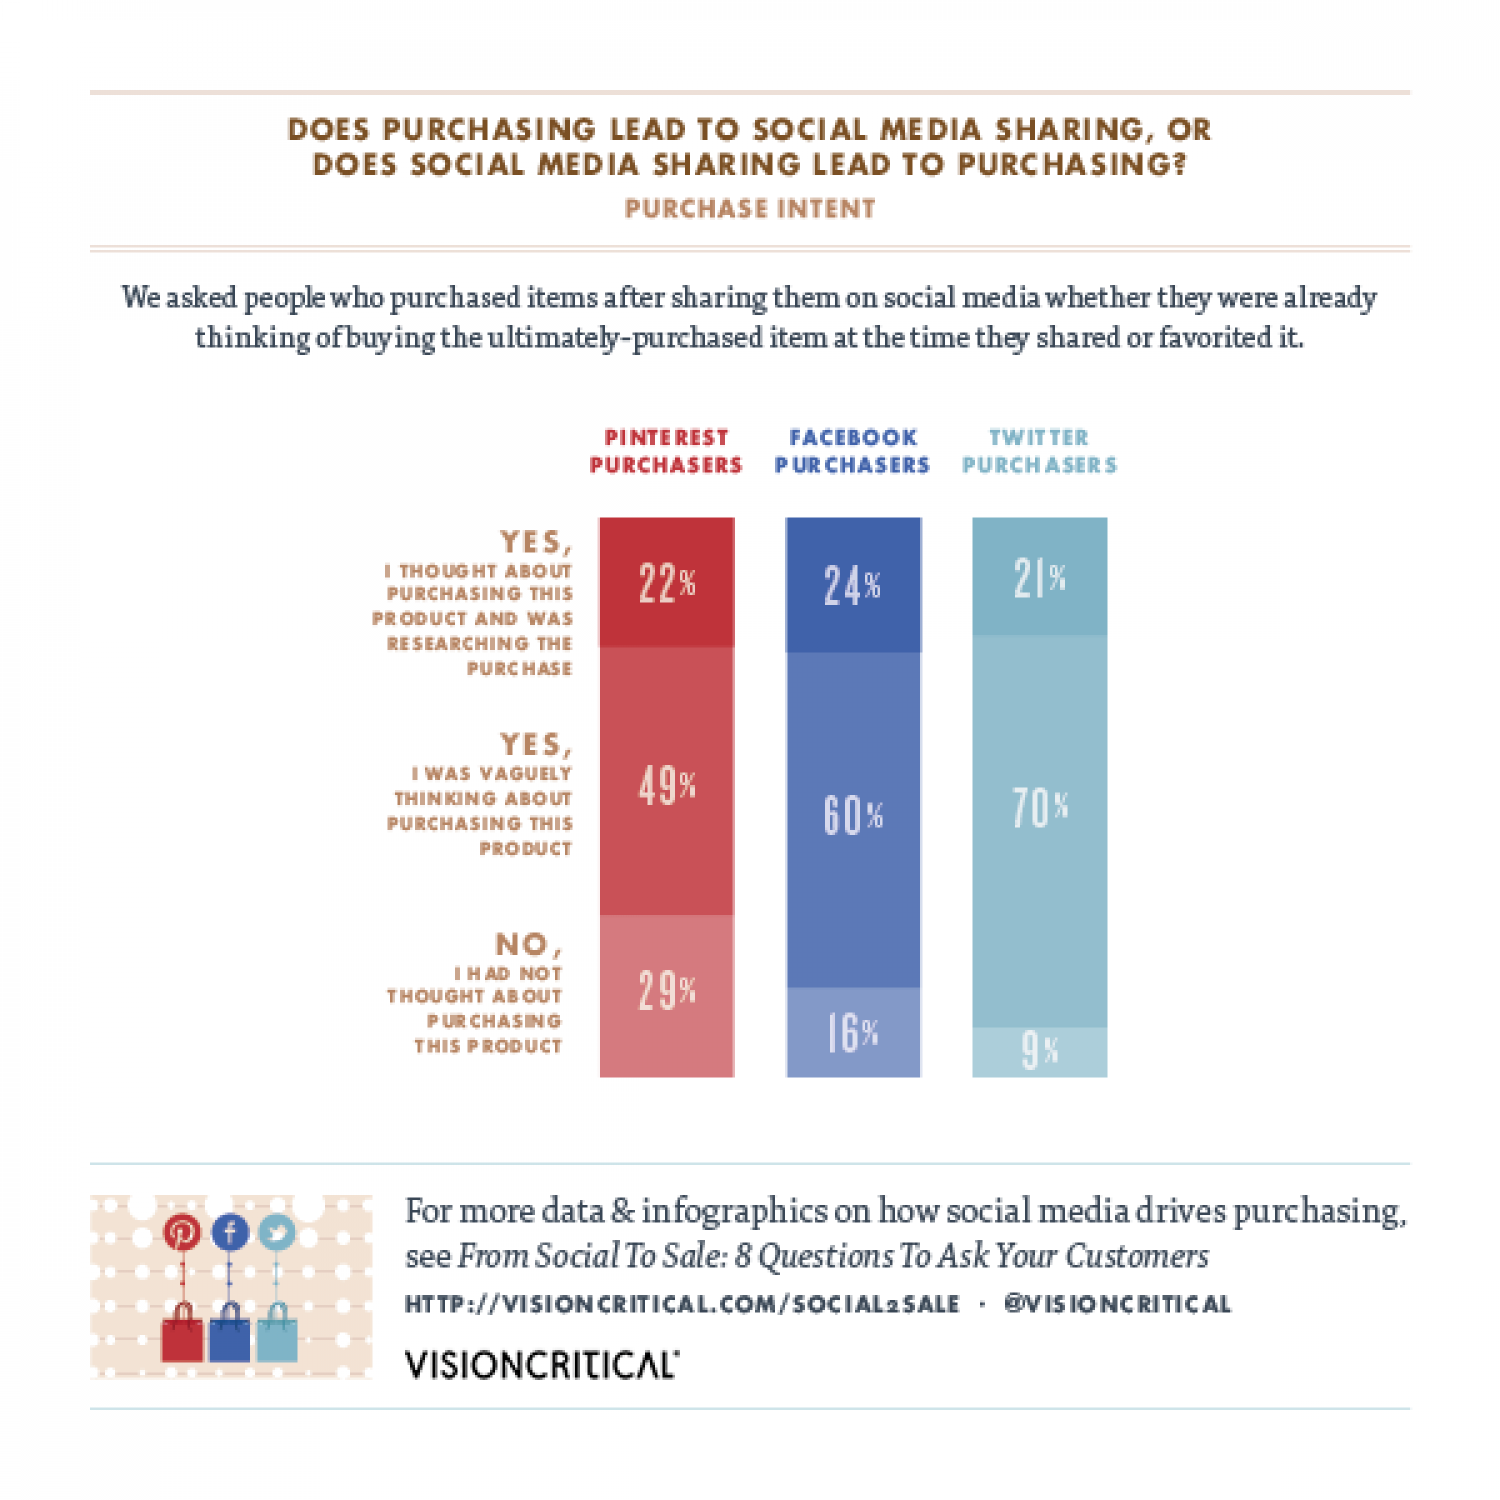 From Social to Sale: Does Purchasing Lead to Social Media Sharing?  Infographic